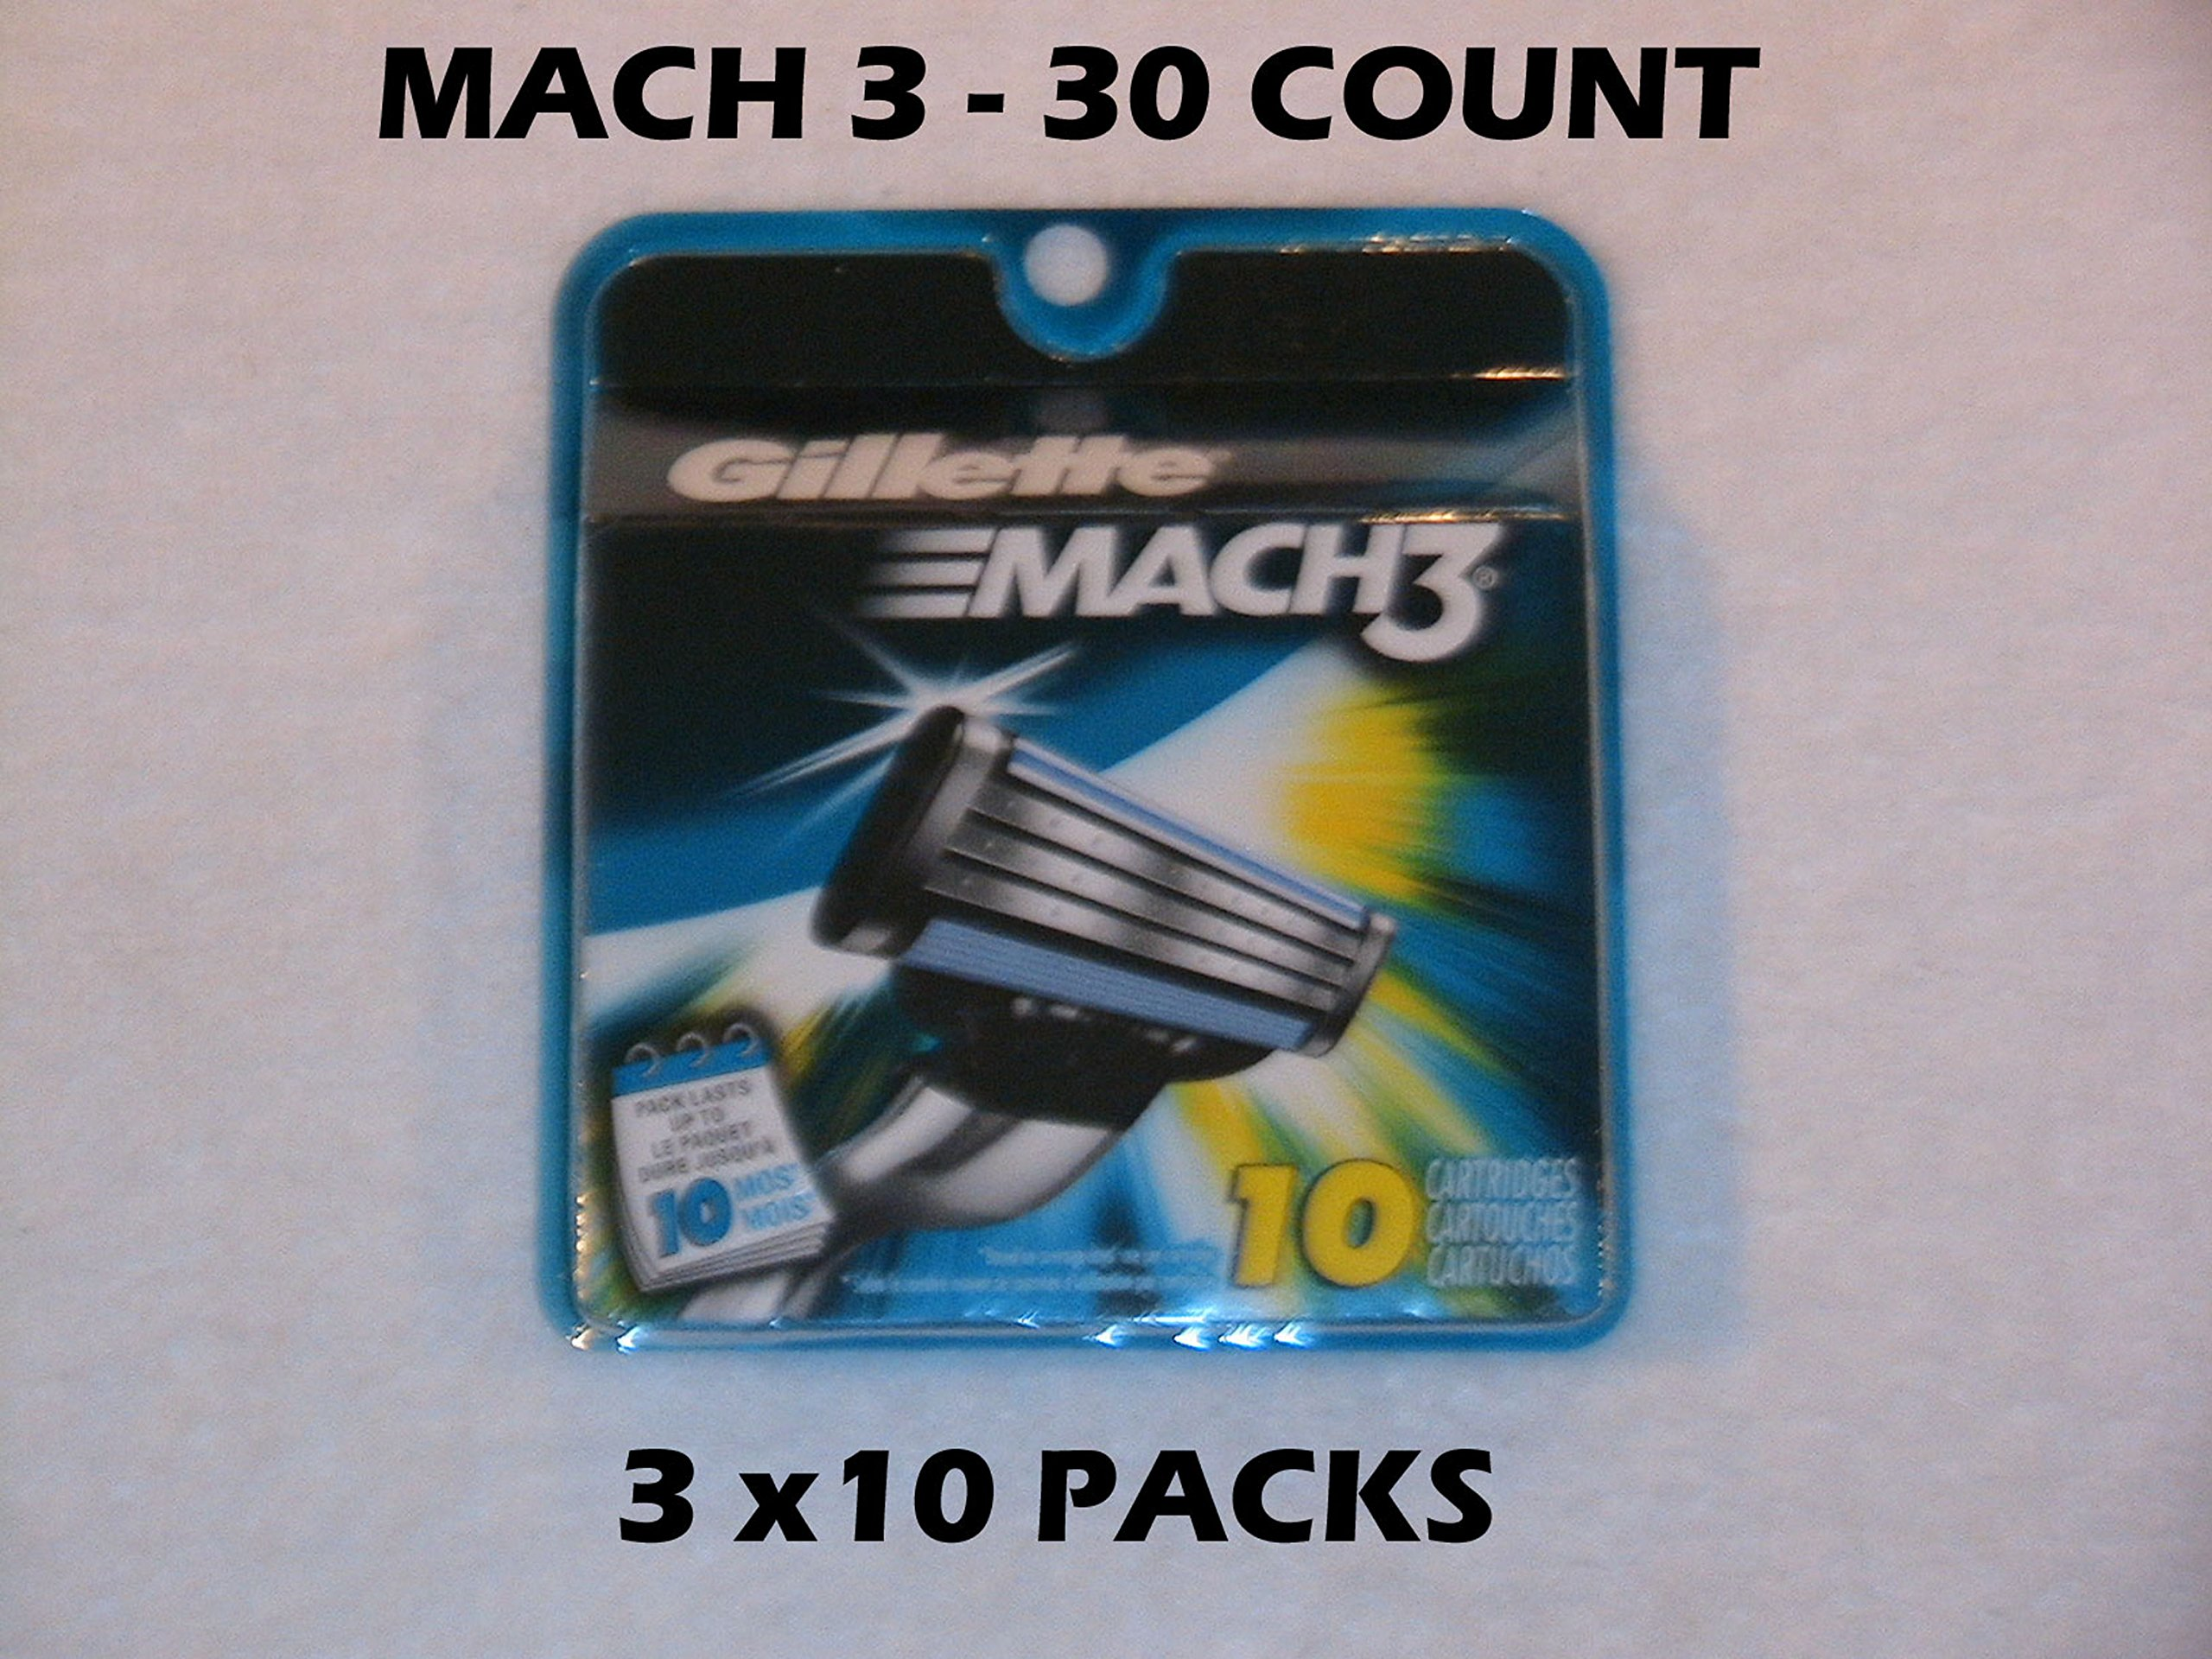 Gillette Mach 3 - 30 Count (3 x 10 Pack)